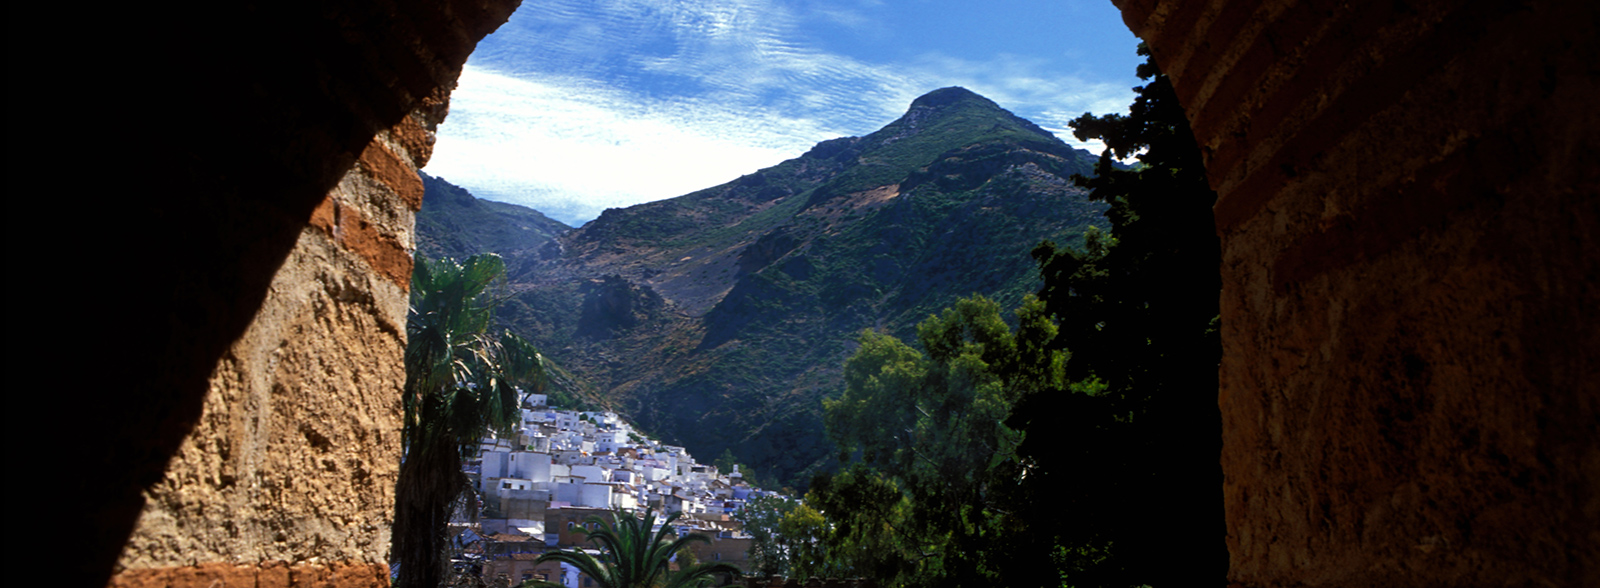 The natural beauty of Chefchaouen